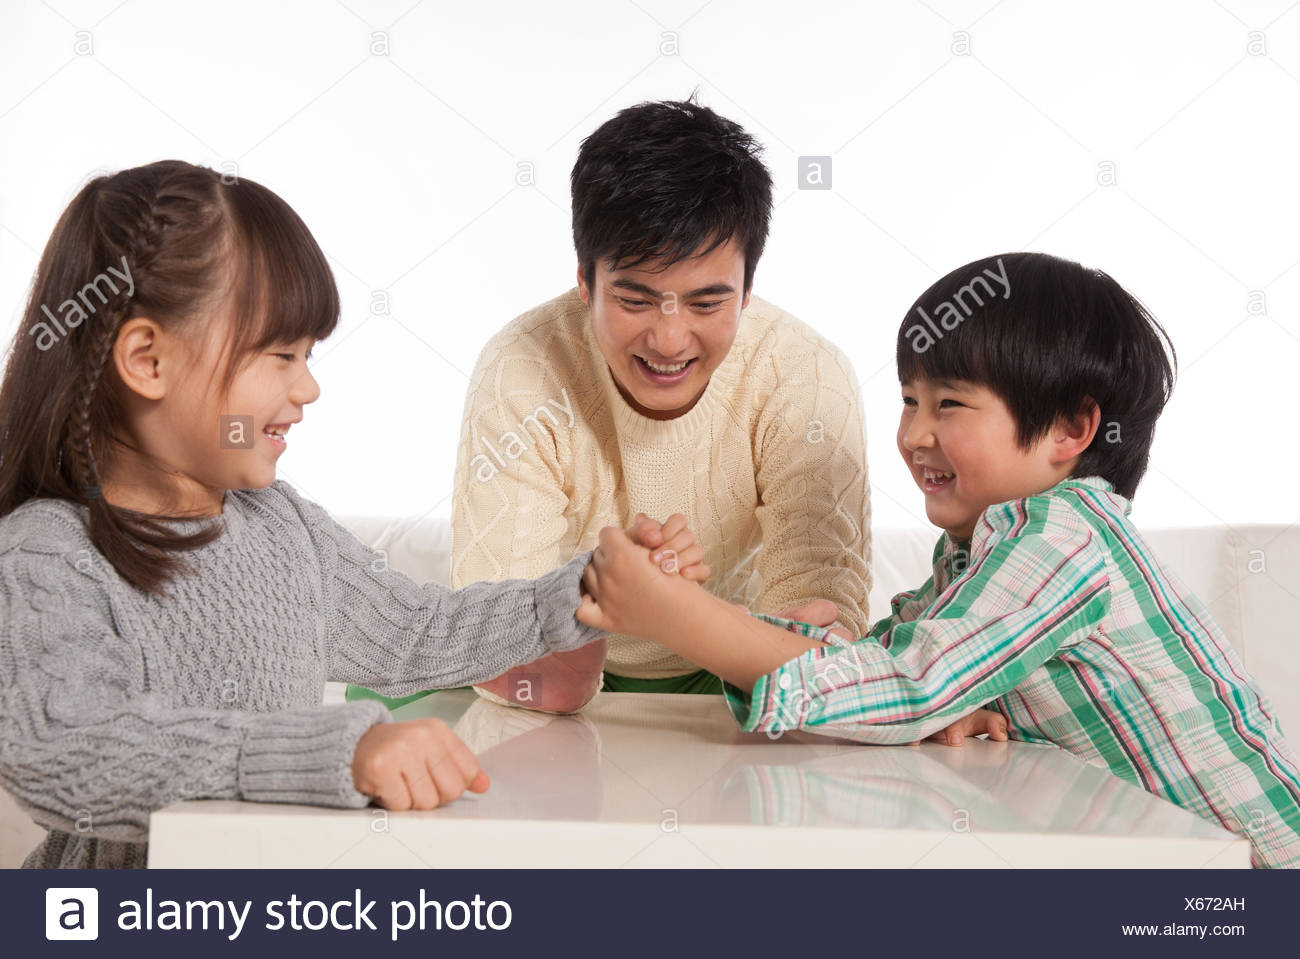 Boys and girls in an arm-wrestling father do referees - Stock Image